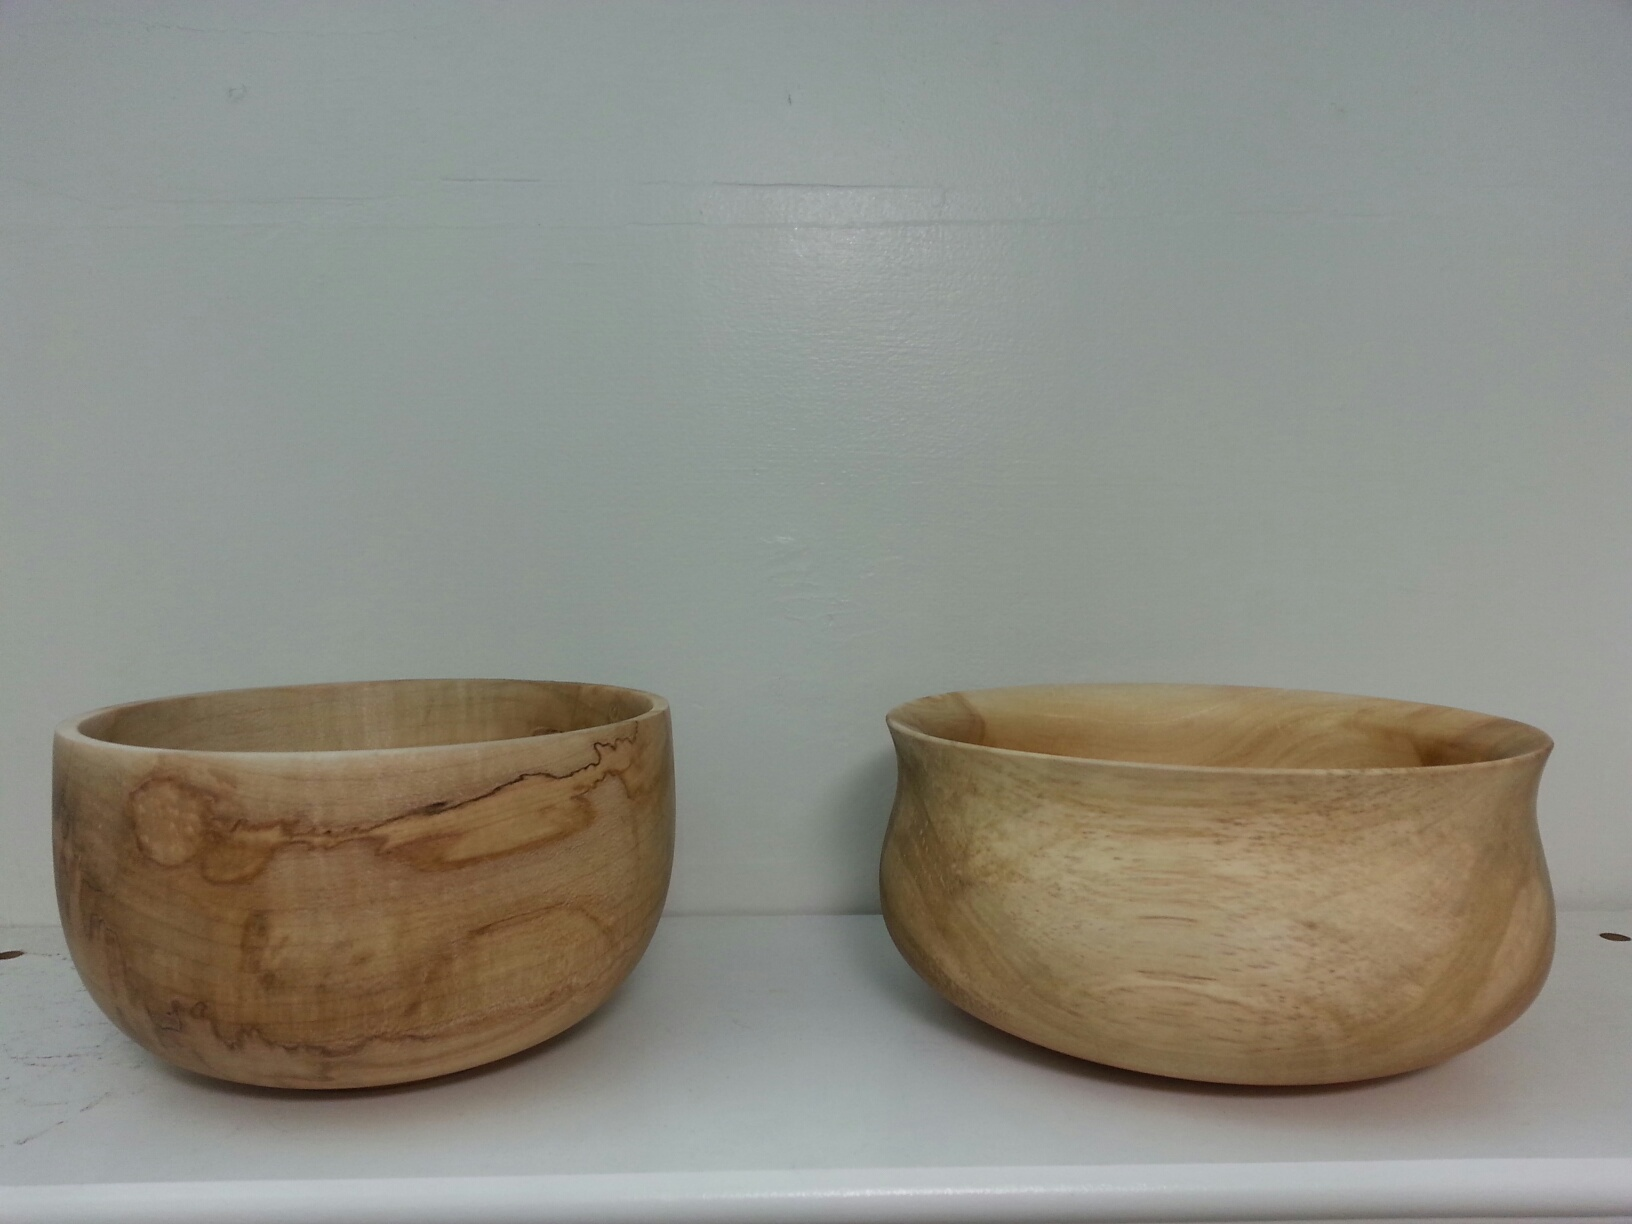 Spalted Maple bowls